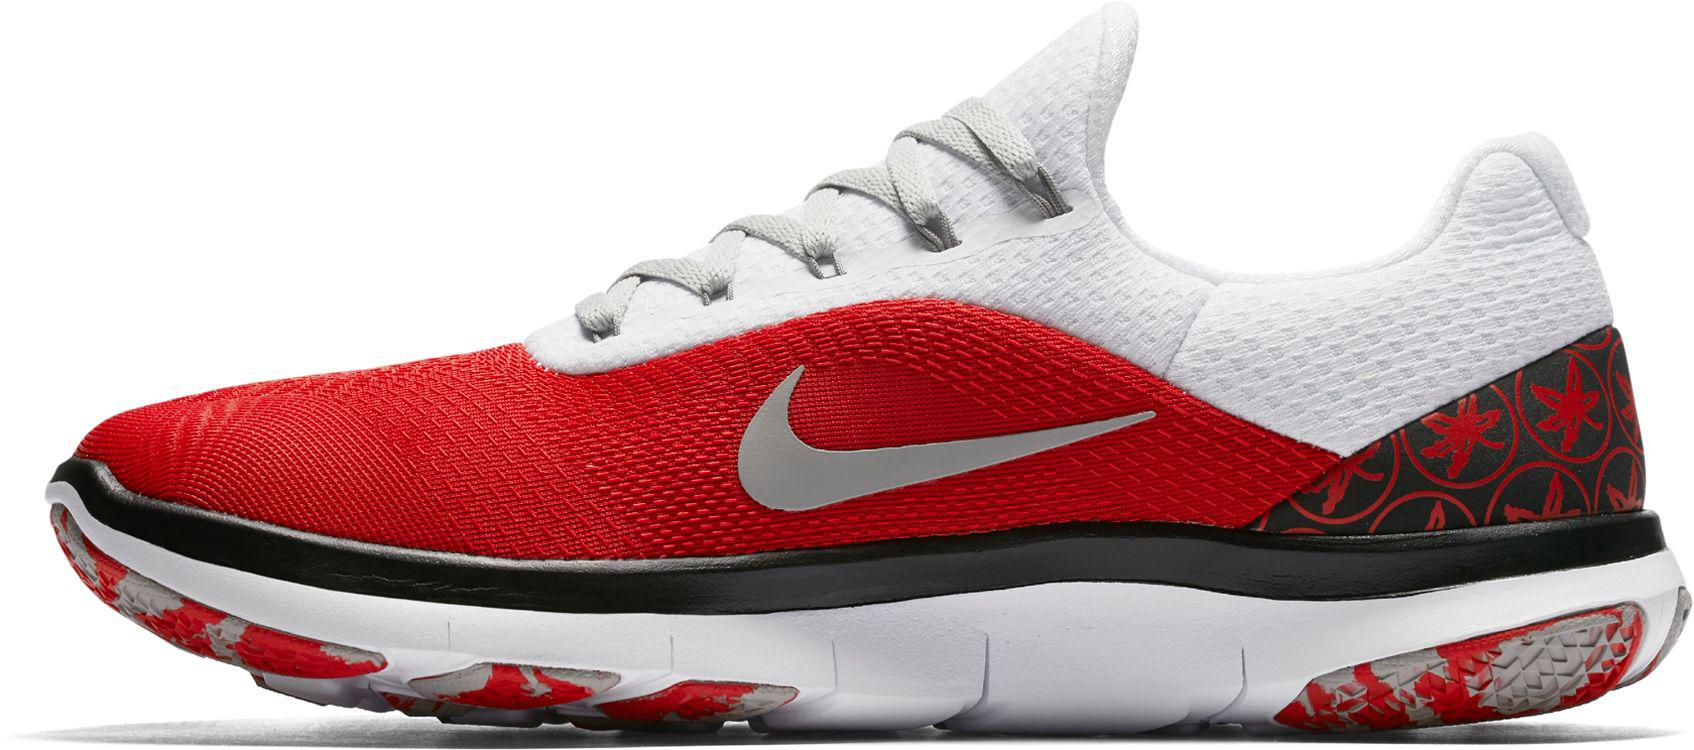 38dc07f21e Nike - Red Free Trainer V7 Week Zero Ohio State Edition Training Shoes for  Men -